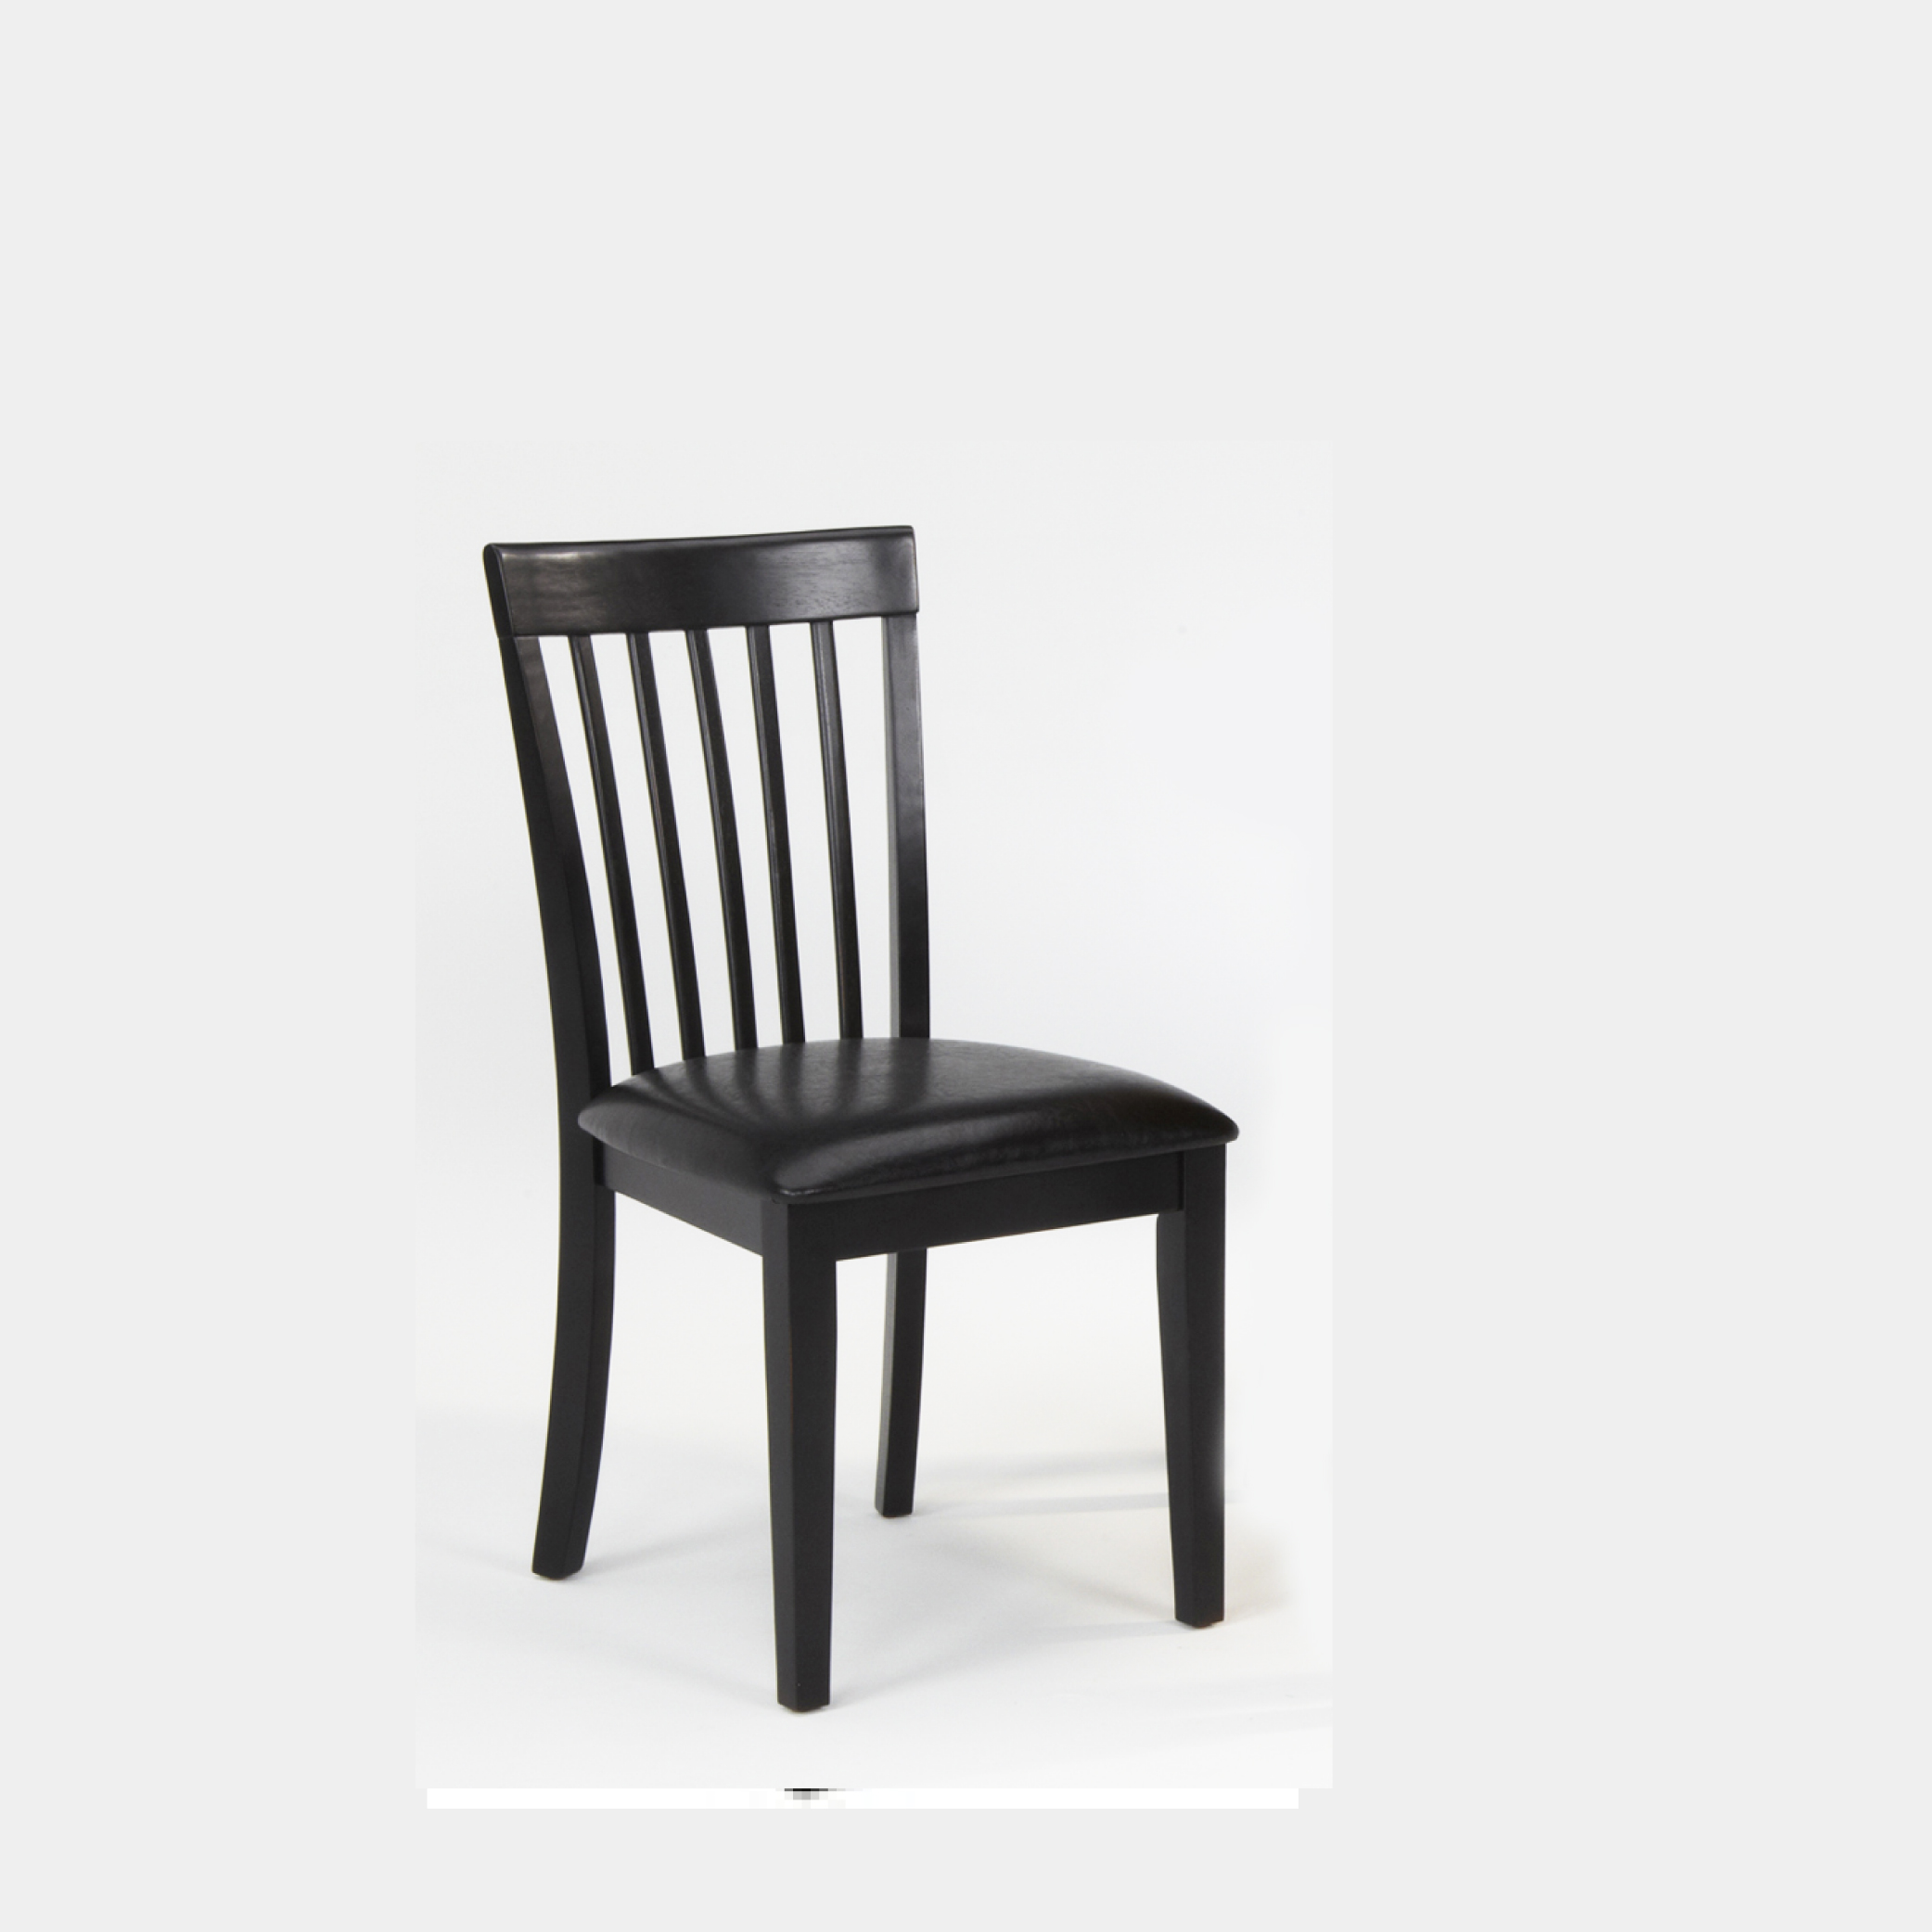 Contemporary Slatback Chair